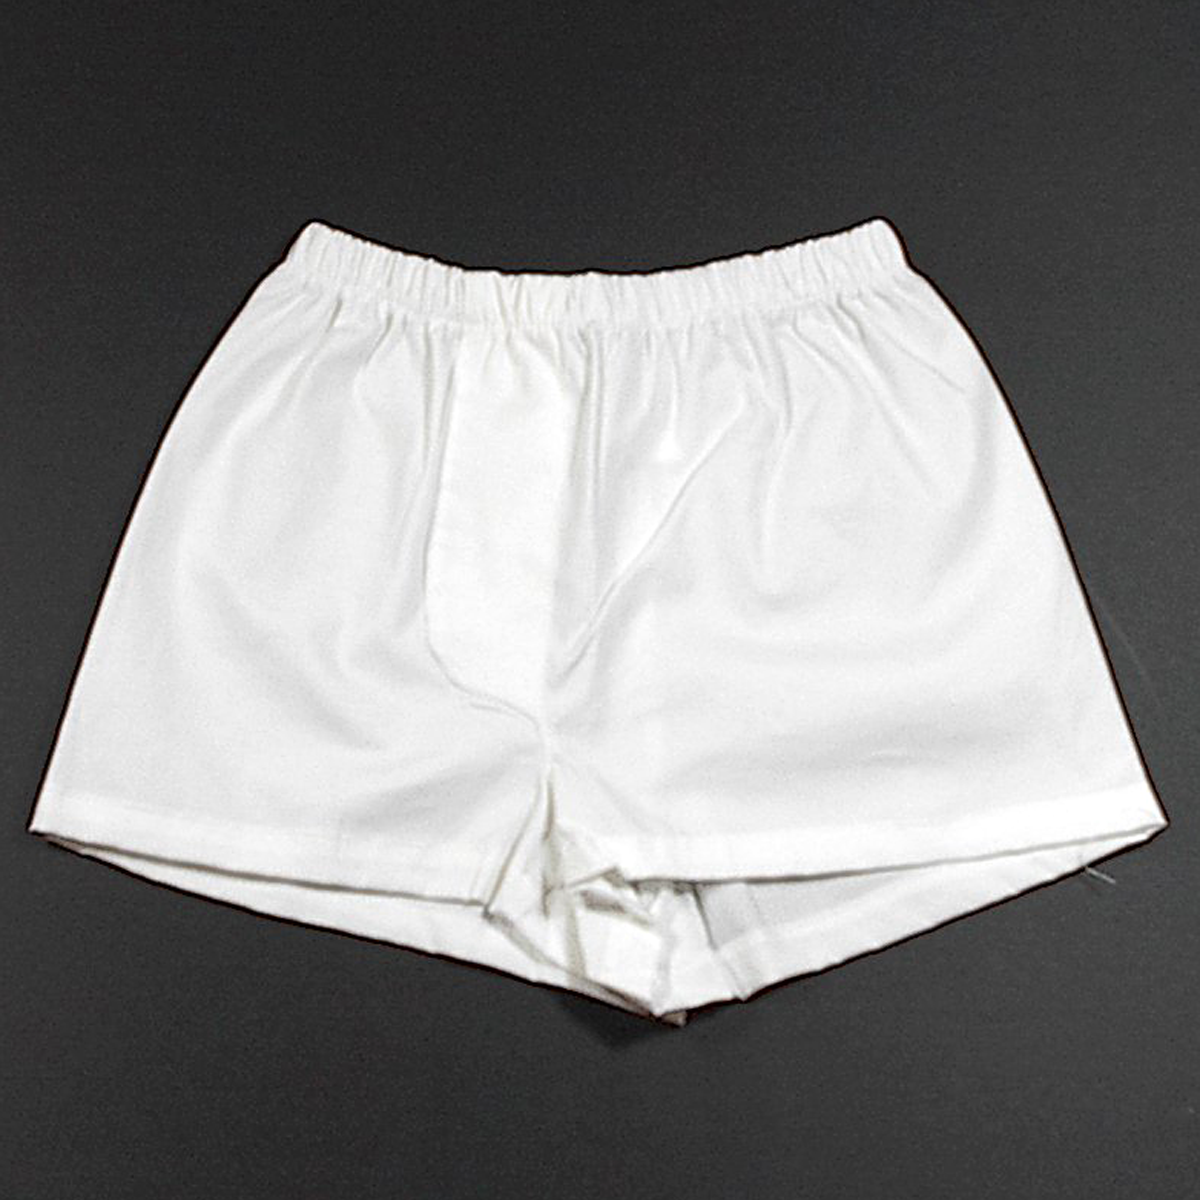 You searched for: baby boy boxers! Etsy is the home to thousands of handmade, vintage, and one-of-a-kind products and gifts related to your search. No matter what you're looking for or where you are in the world, our global marketplace of sellers can help you find unique and affordable options. Let's get started!